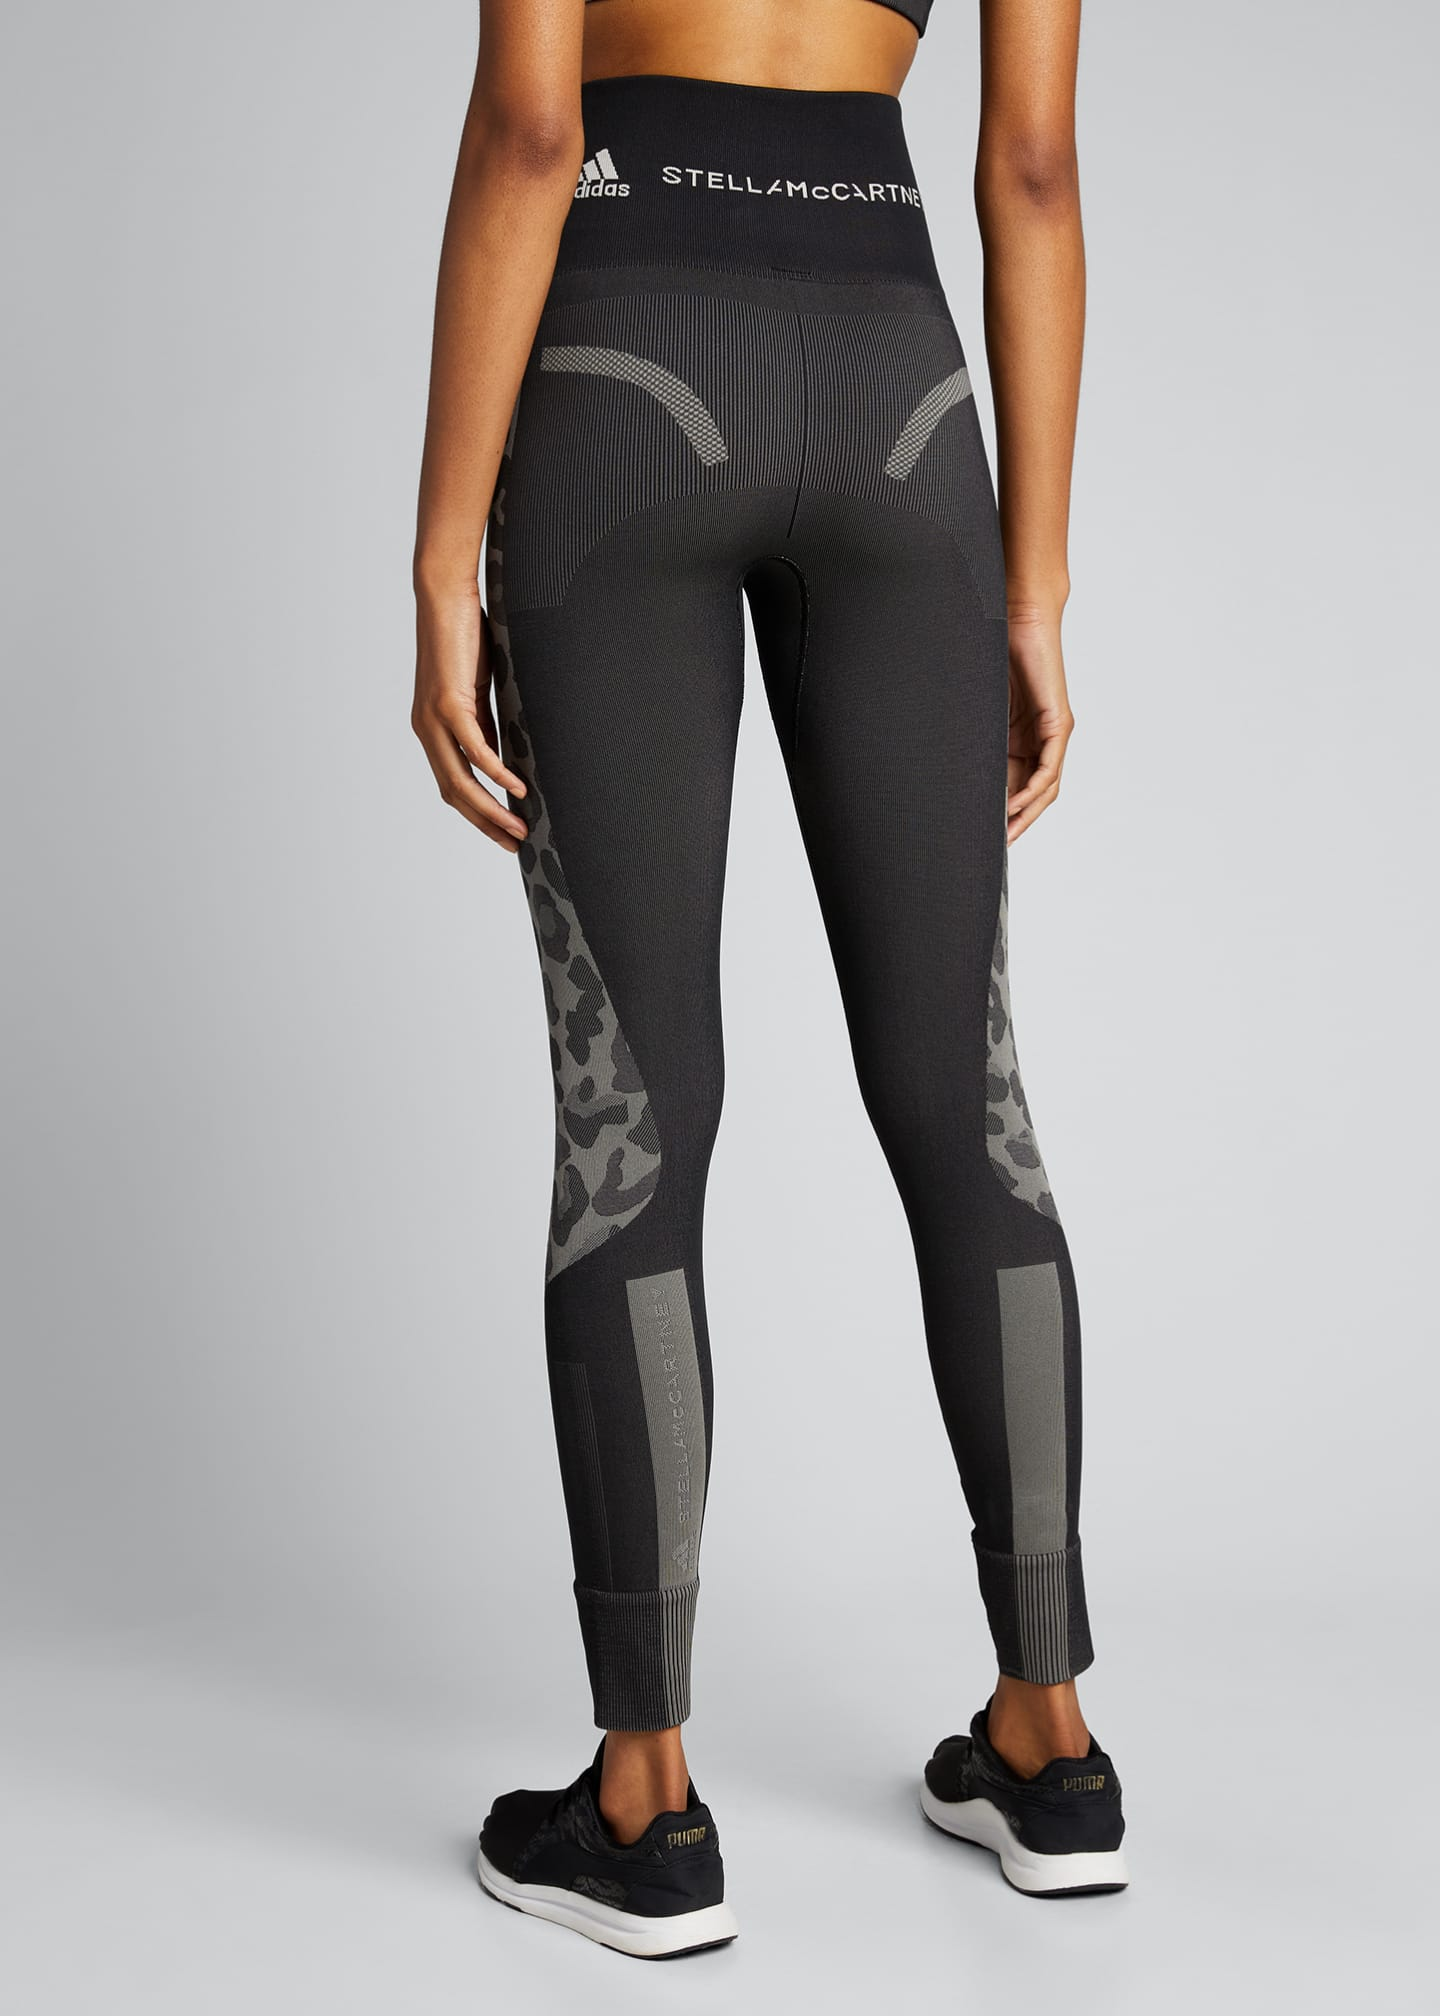 Image 2 of 5: Truepurpose Colorblock Animal Print Active Tights